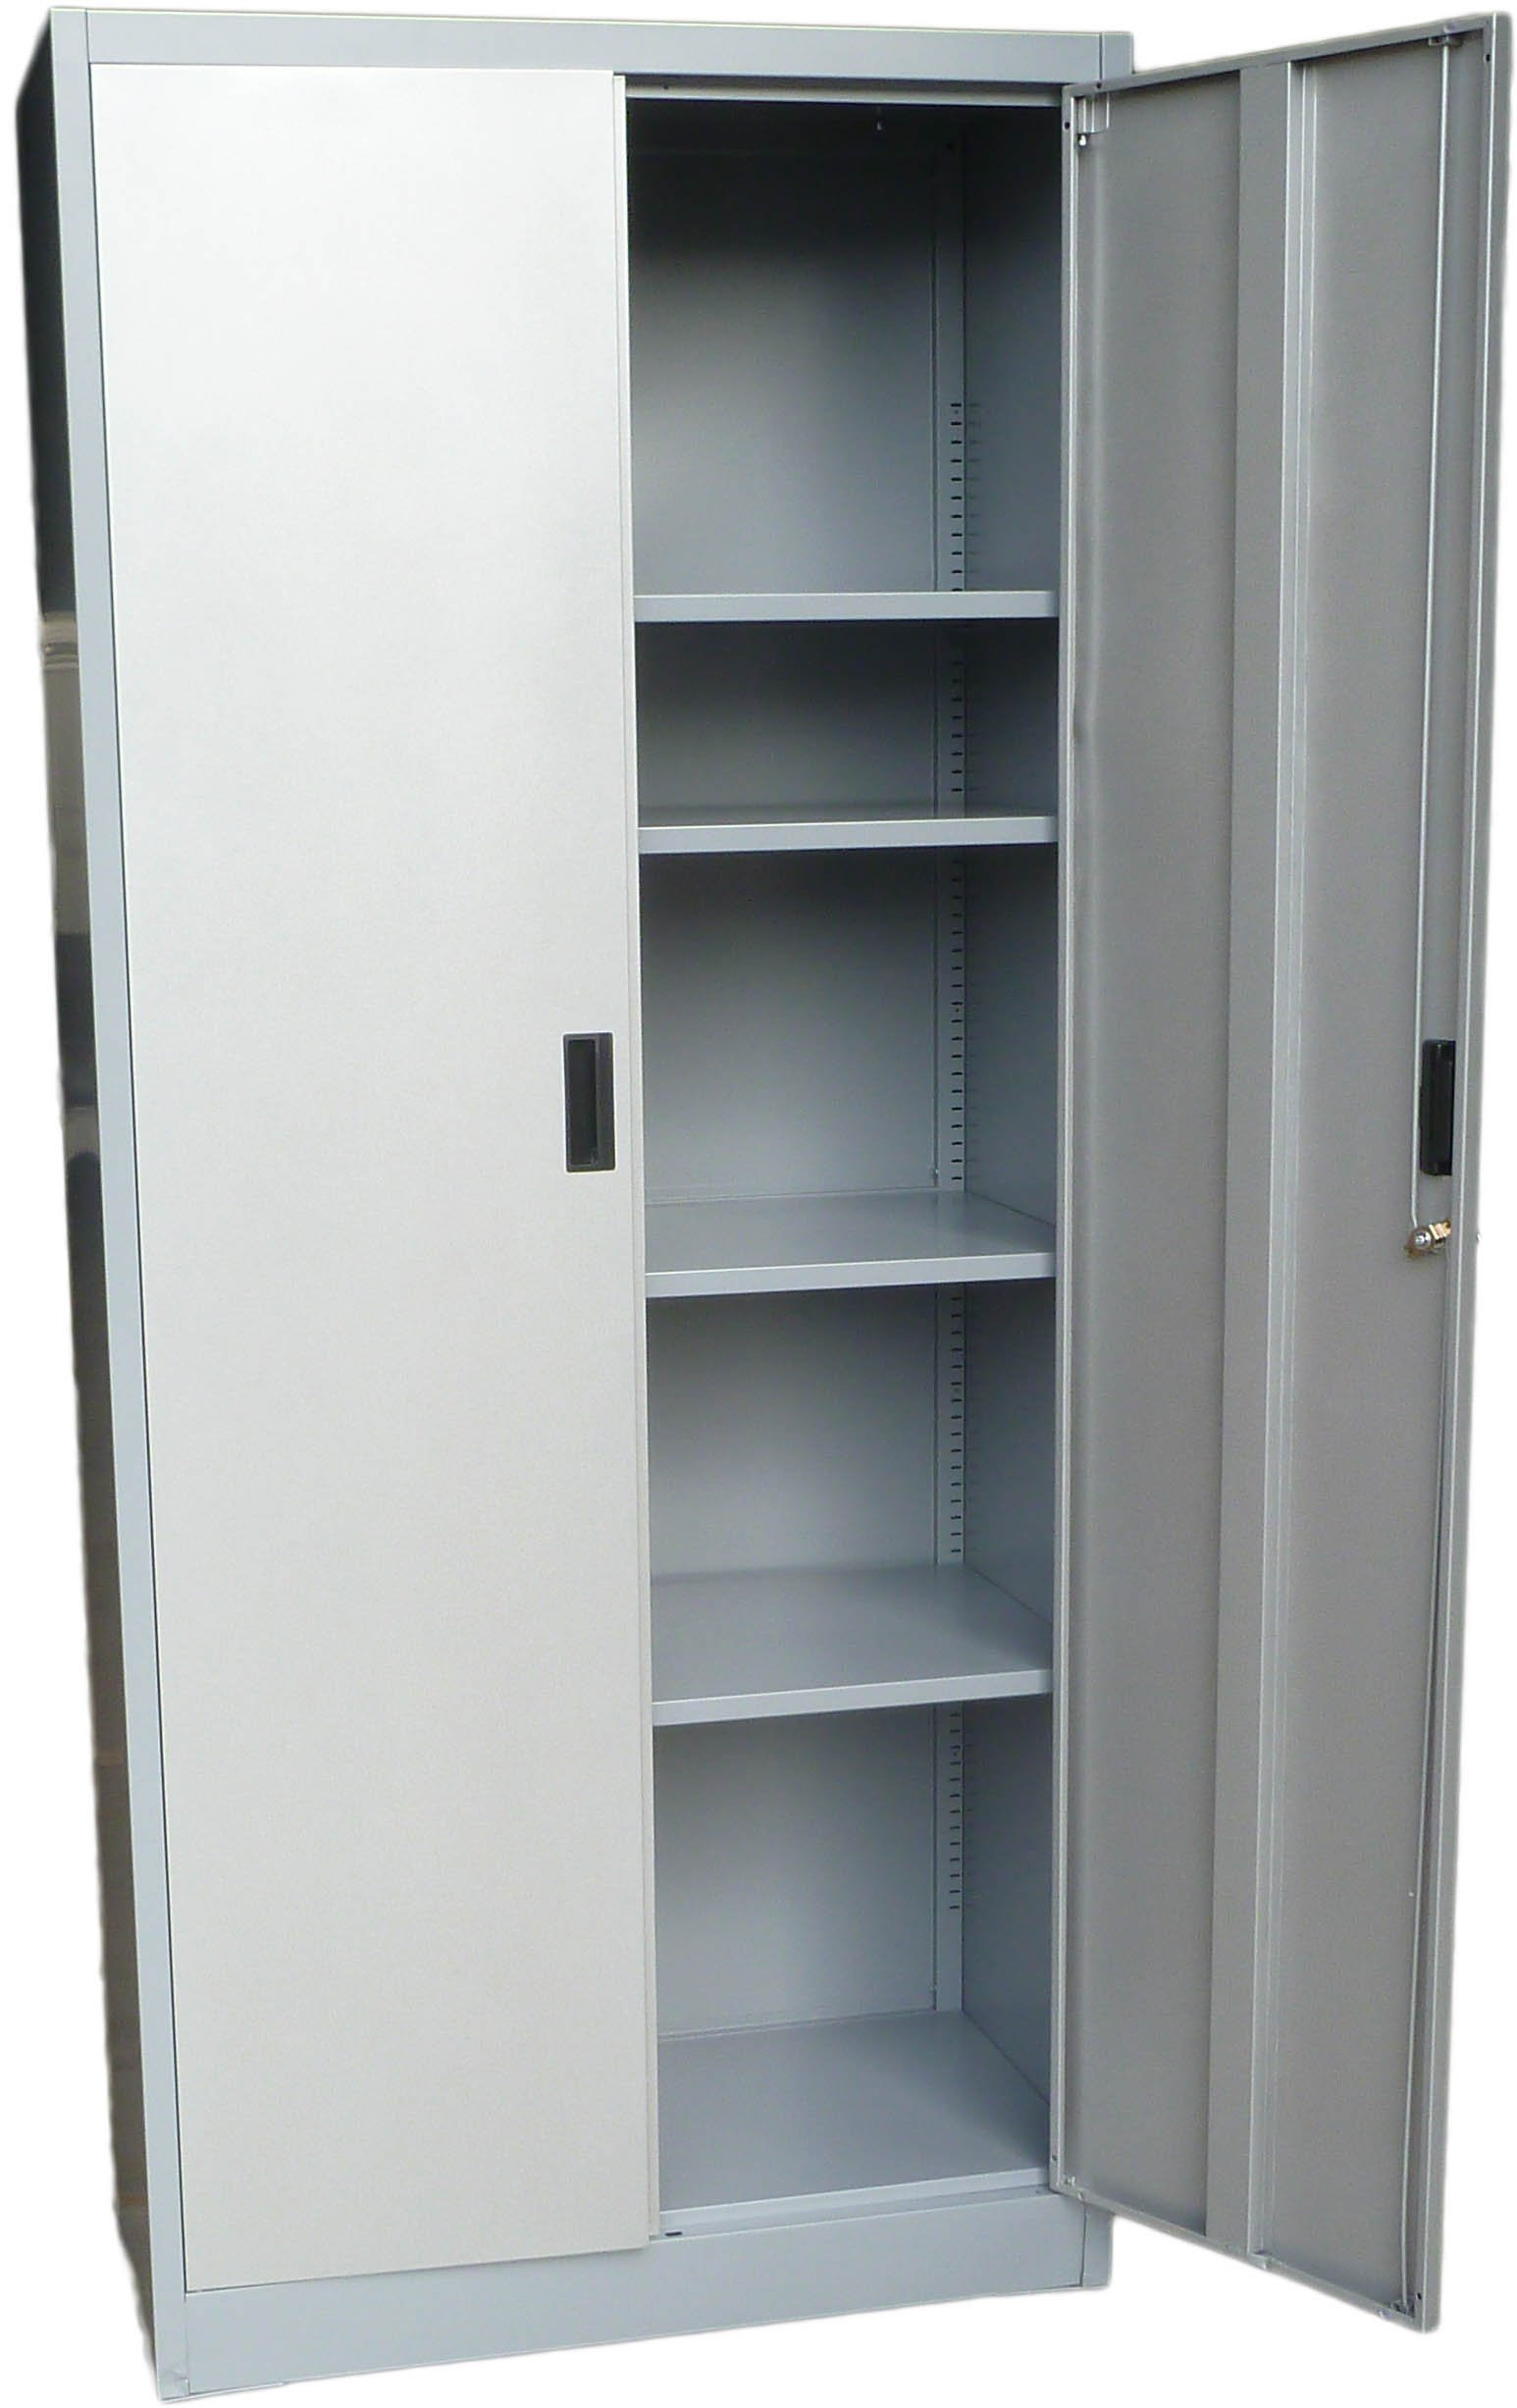 """Tall Storage Cabinet with Doors and Shelves New Fedmax Metal Storage Cabinet 71"""" Tall Lockable Doors and Adjustable Shelves 70 86"""" Tall X 31 5"""" W X 15 75"""" D Great Steel Locker for Garage Kitchen"""